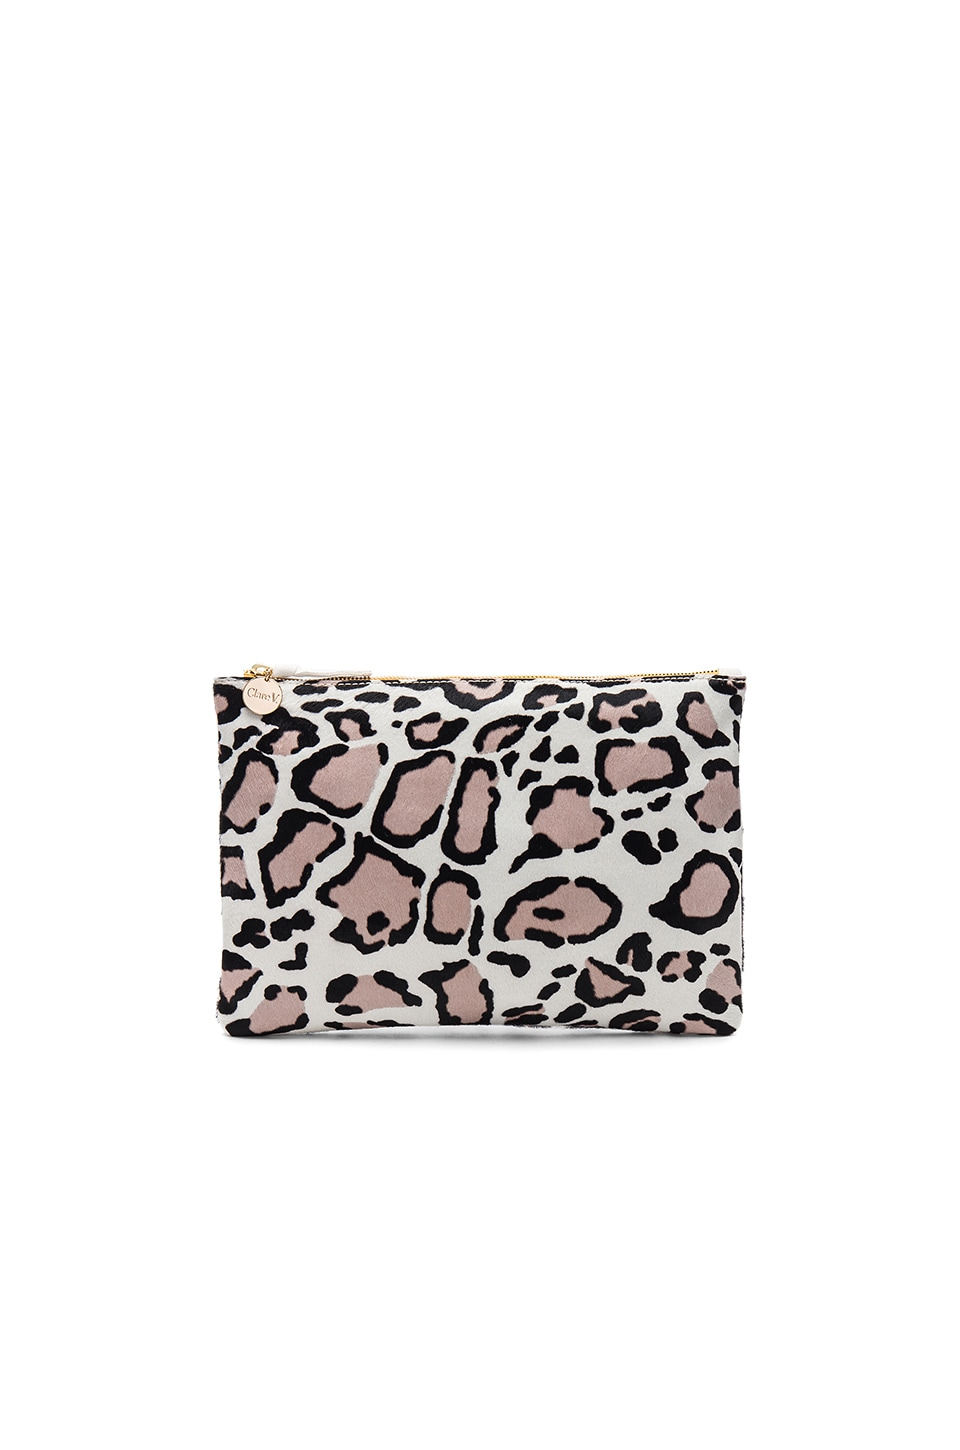 Clare V. Hair On Flat Clutch in Snow Cat